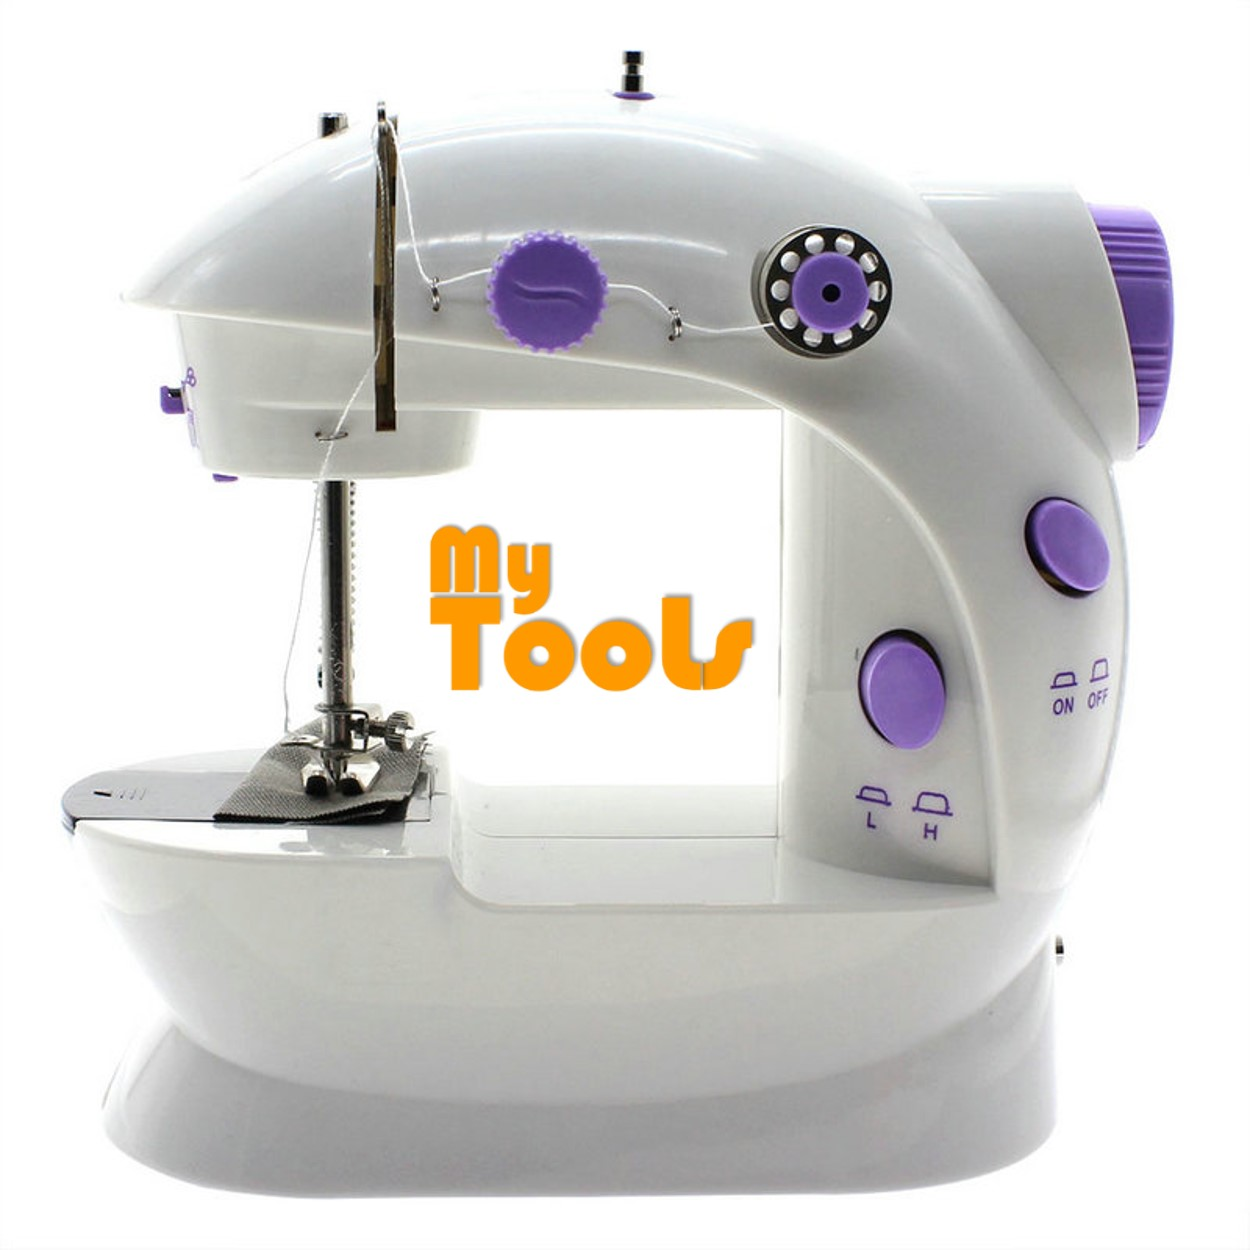 Mytools Portable Electric Mini Sewing Machine 202 with Foot Pedal (UK 2 Pin Plug)